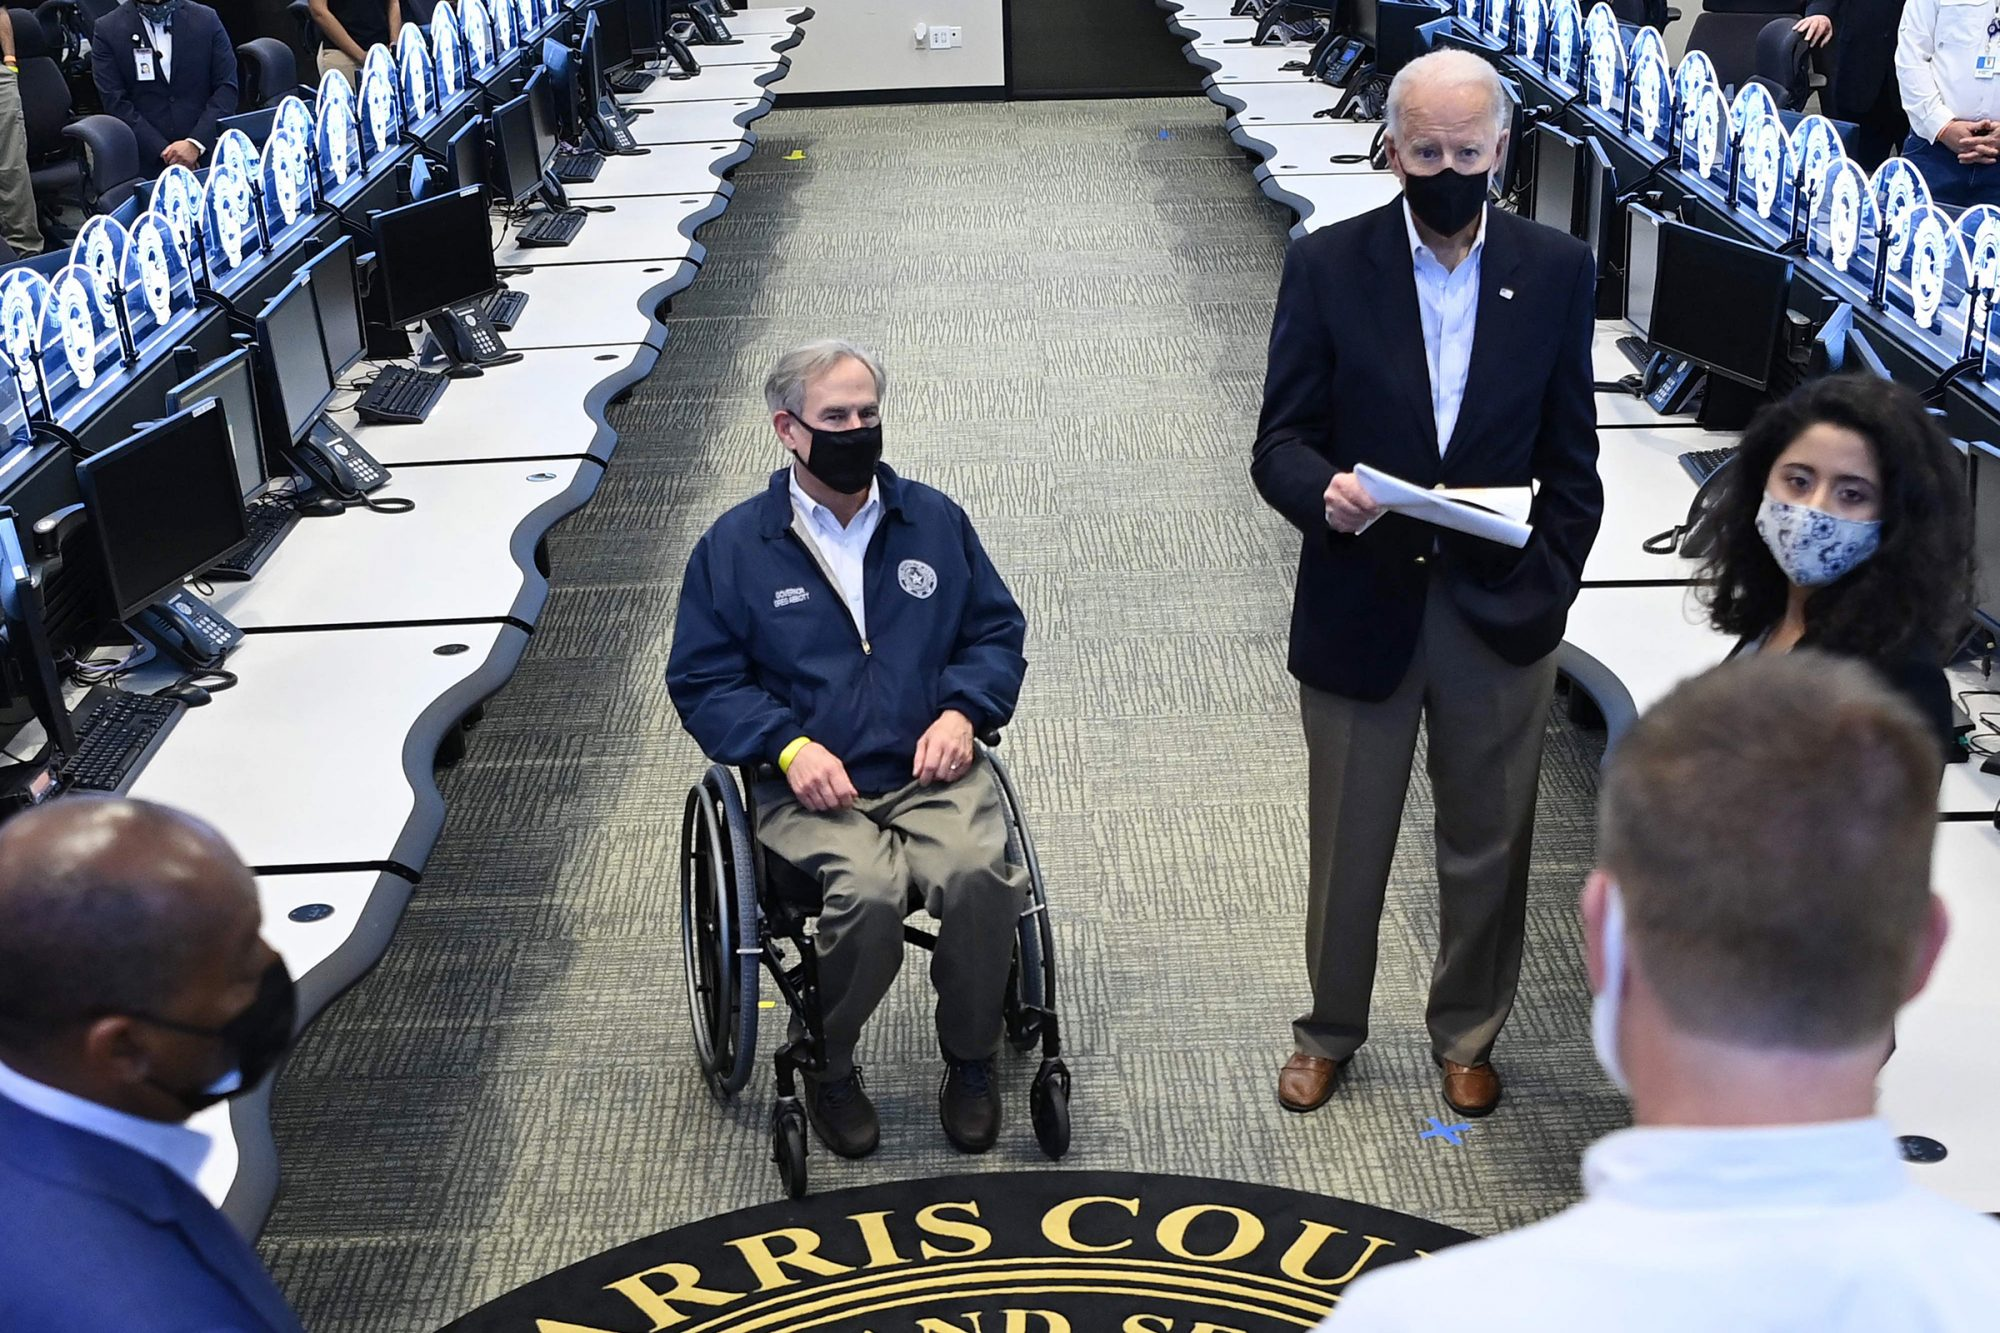 President Joe Biden and Texas Governor Greg Abbott (L) listen to officials at the Harris County Emergency Operations Center in Houston, Texas on February 26, 2021